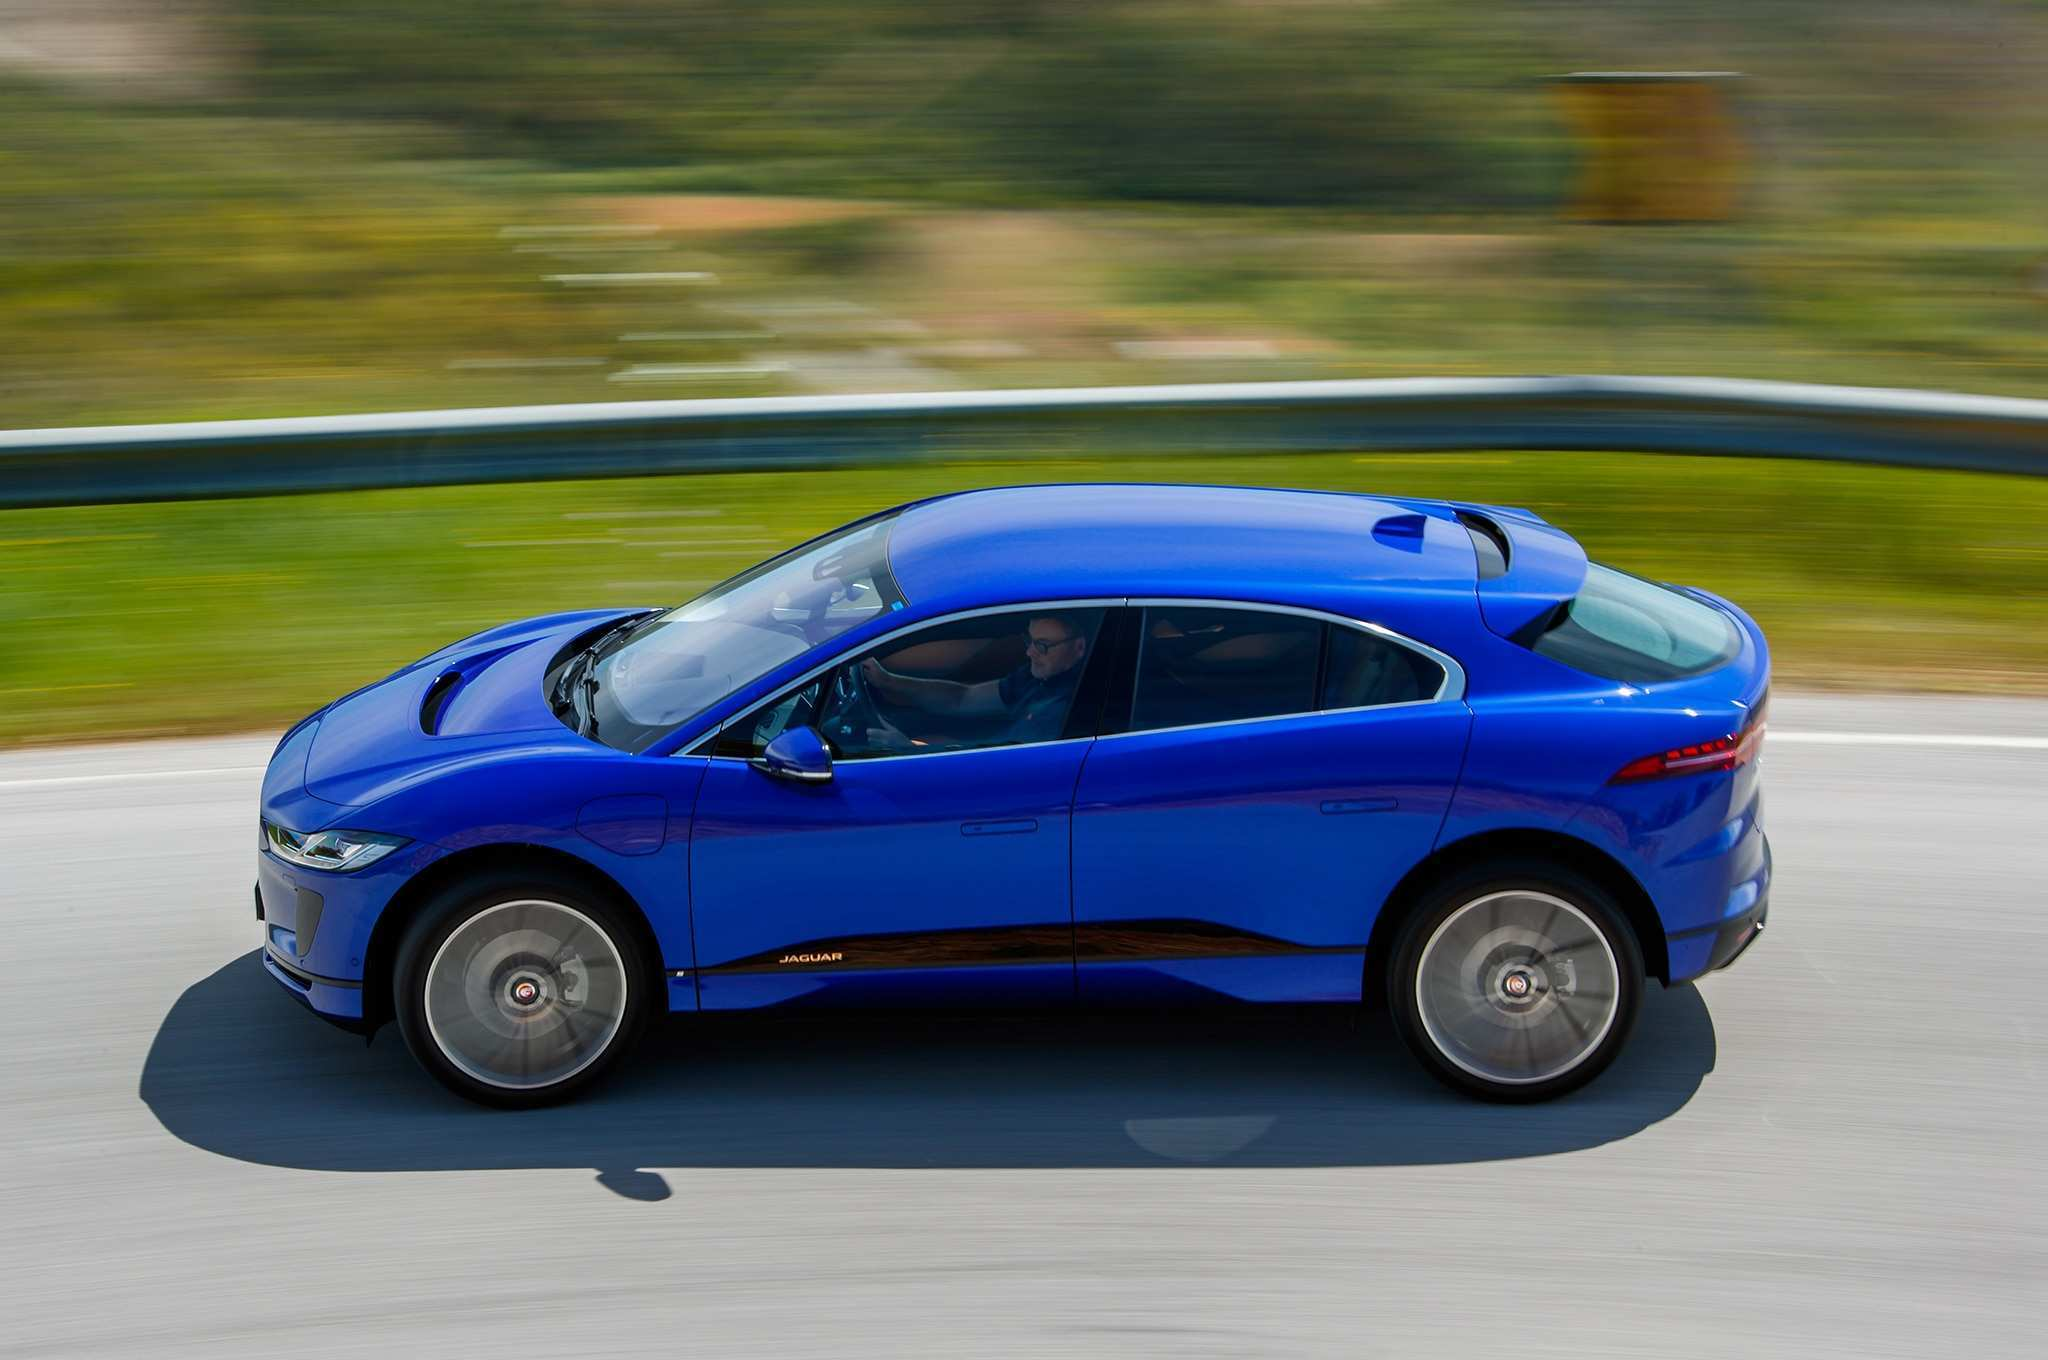 94 The 2019 Jaguar I Pace Picture by 2019 Jaguar I Pace